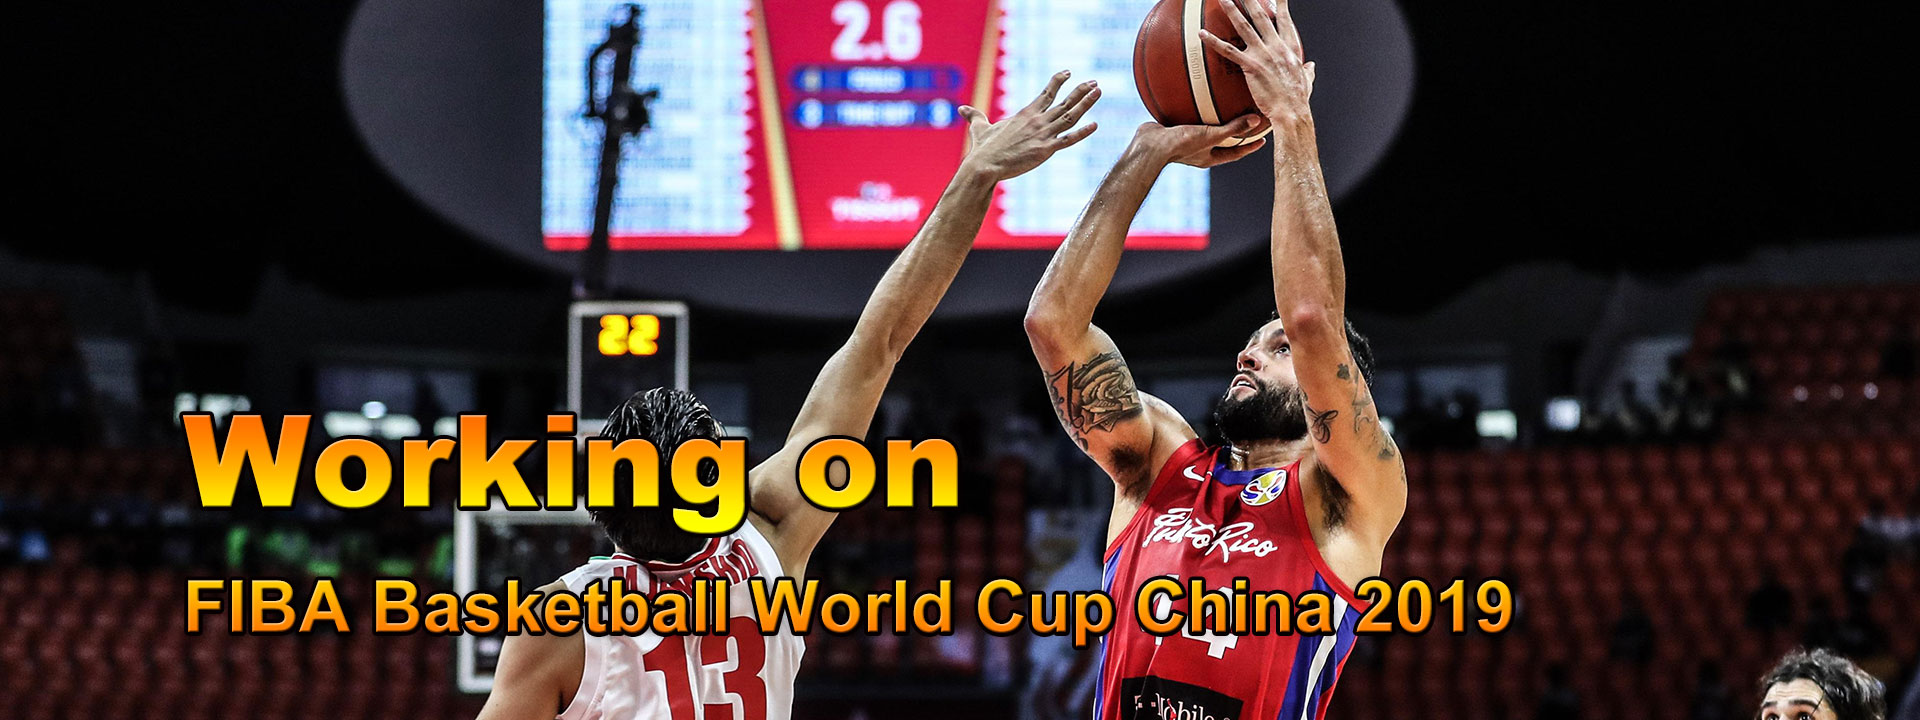 Working on Basketball World Cup